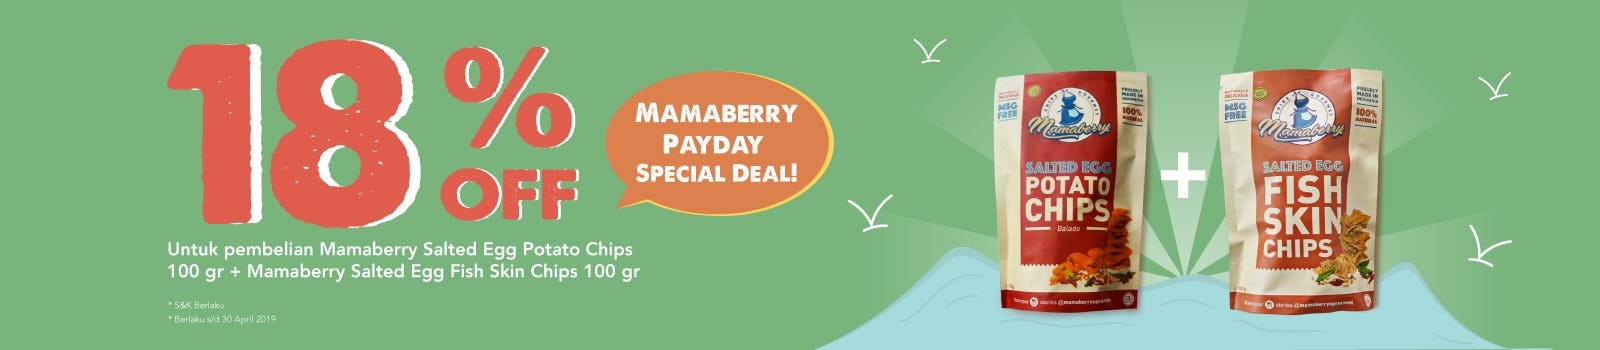 Mamaberry Payday Special Deal 18% OFF